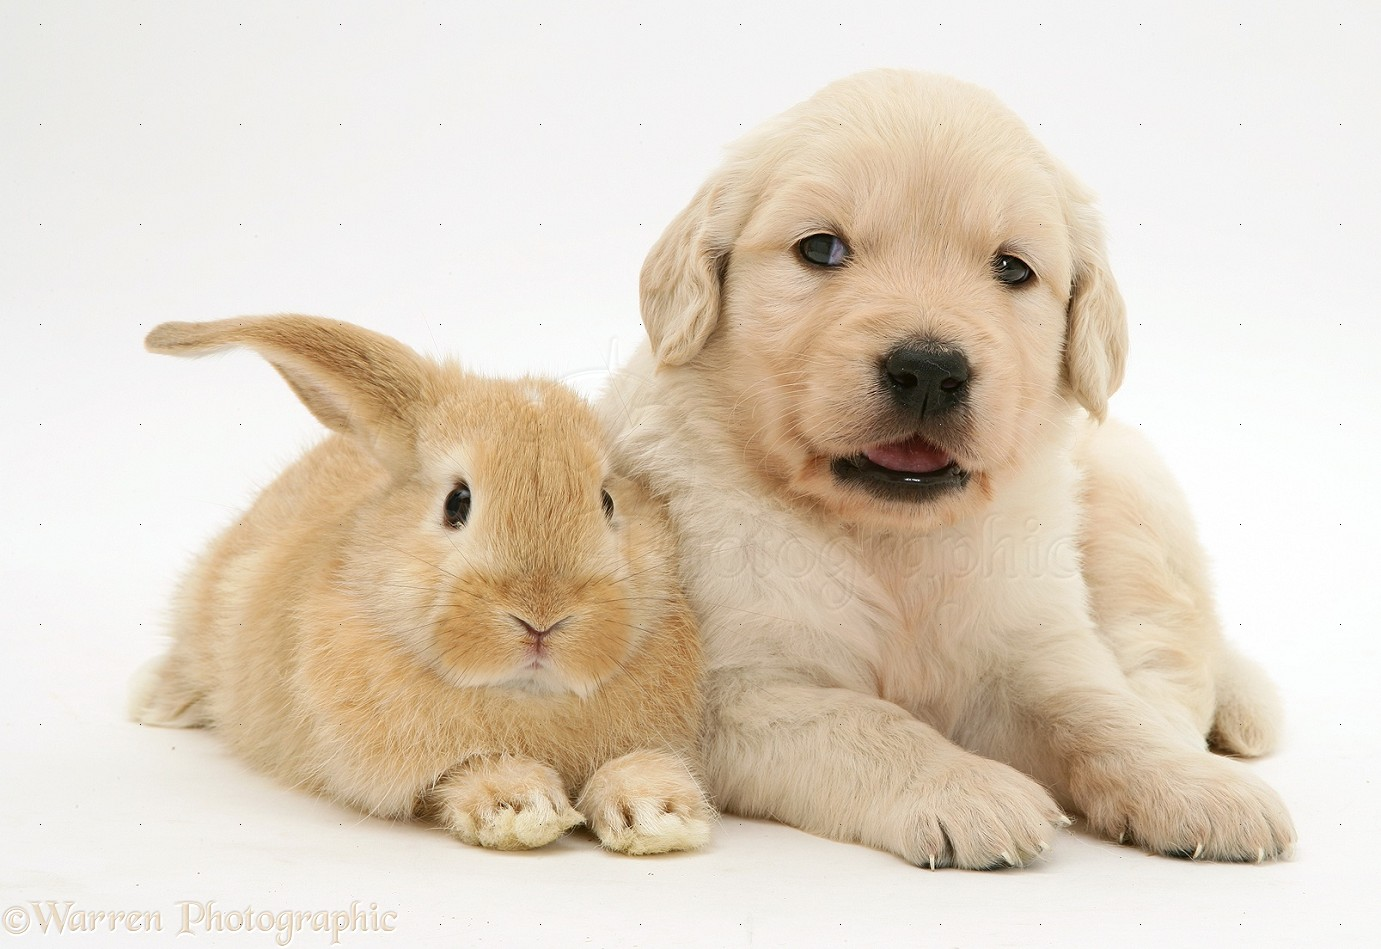 Baby sandy Lop rabbit with Golden Retriever pup photo - WP10574